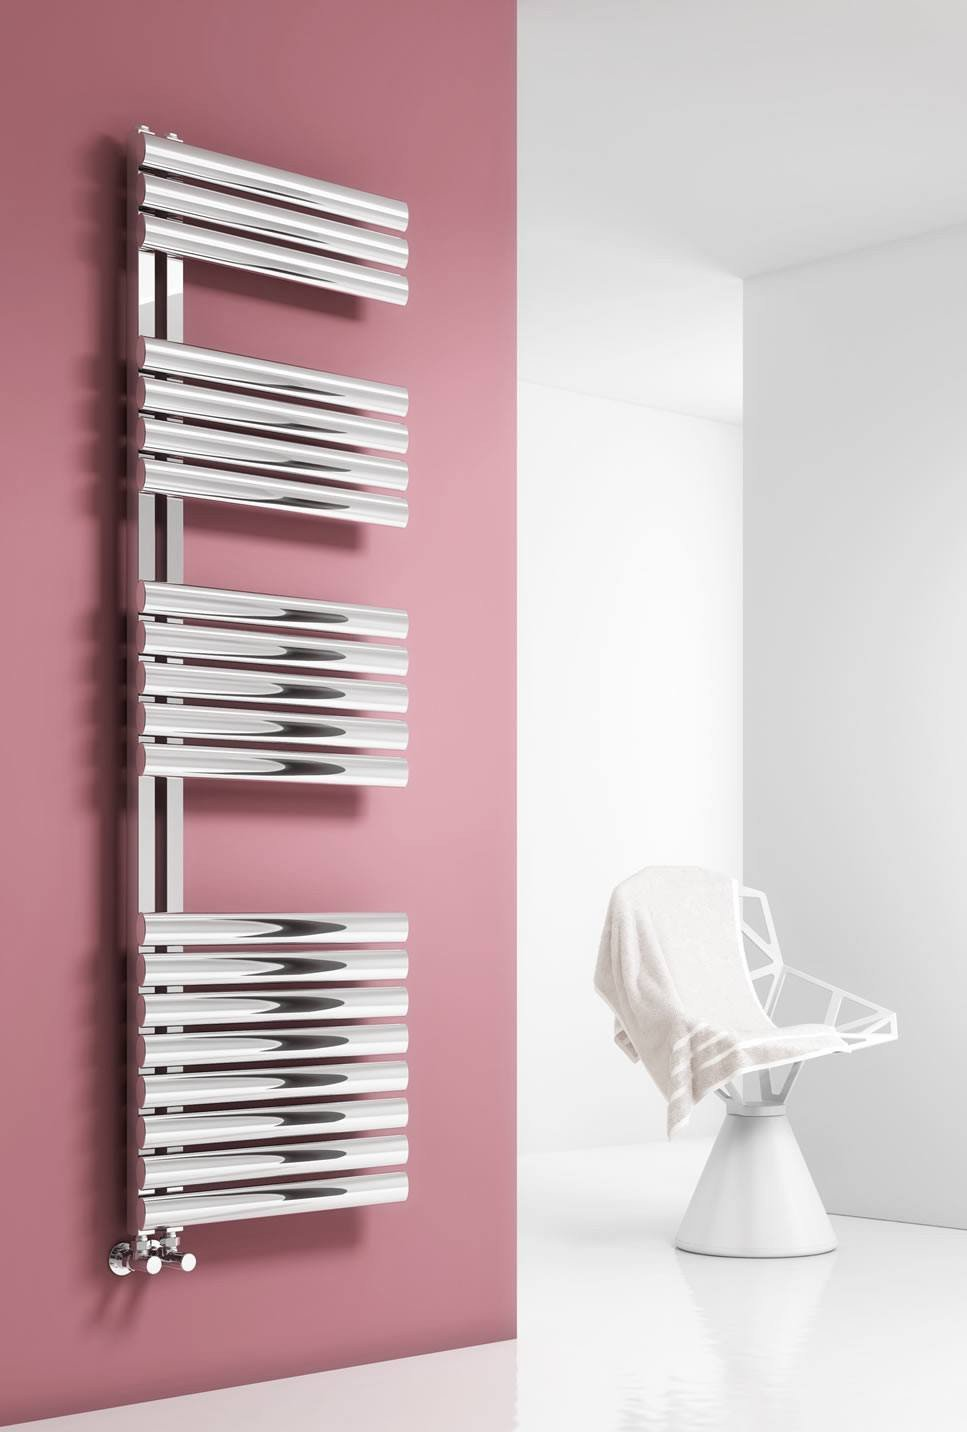 Reina Designer Scalo Vertical Heated Towel Rail Stainless Steel Radiator